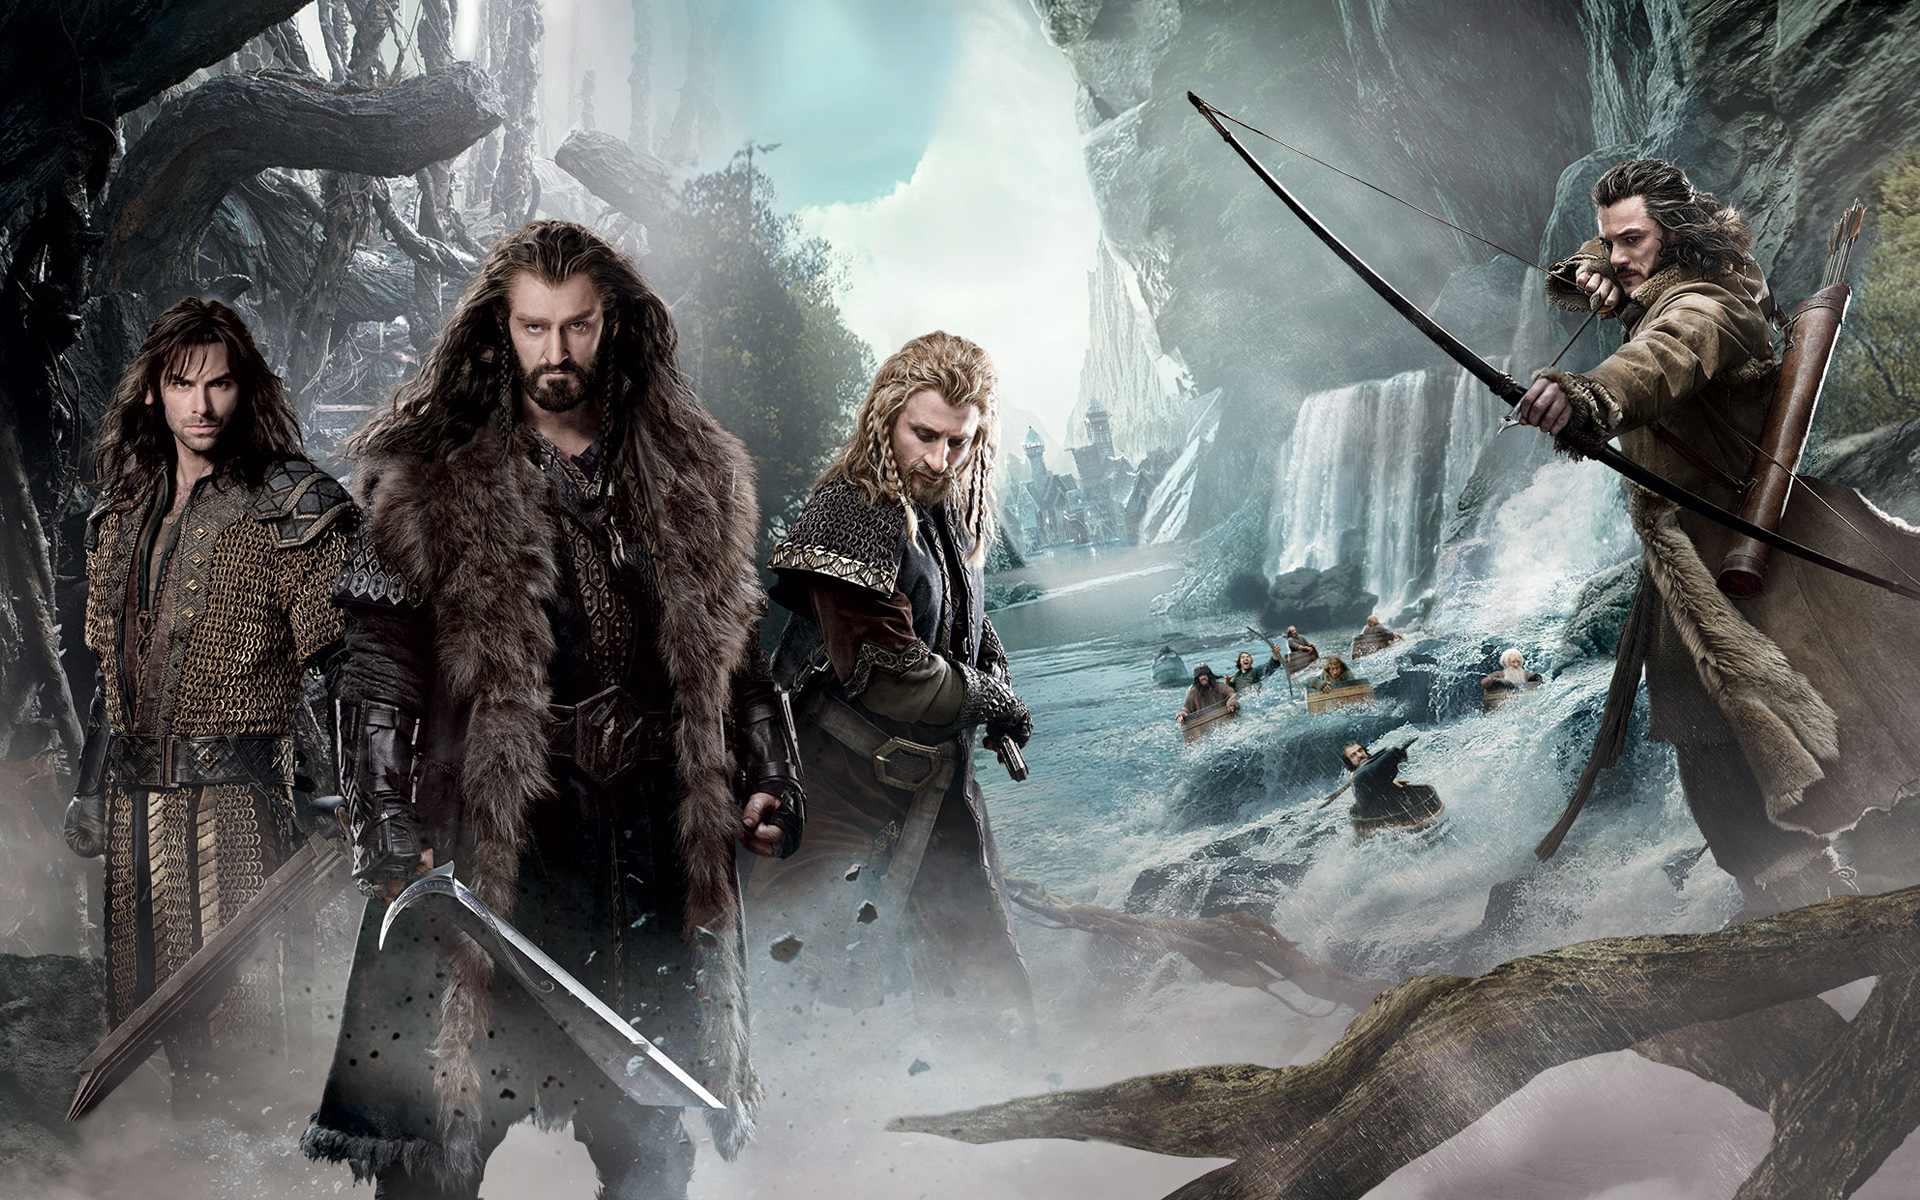 The Hobbit 2 Movie Wallpapers HD Wallpapers 1920x1200